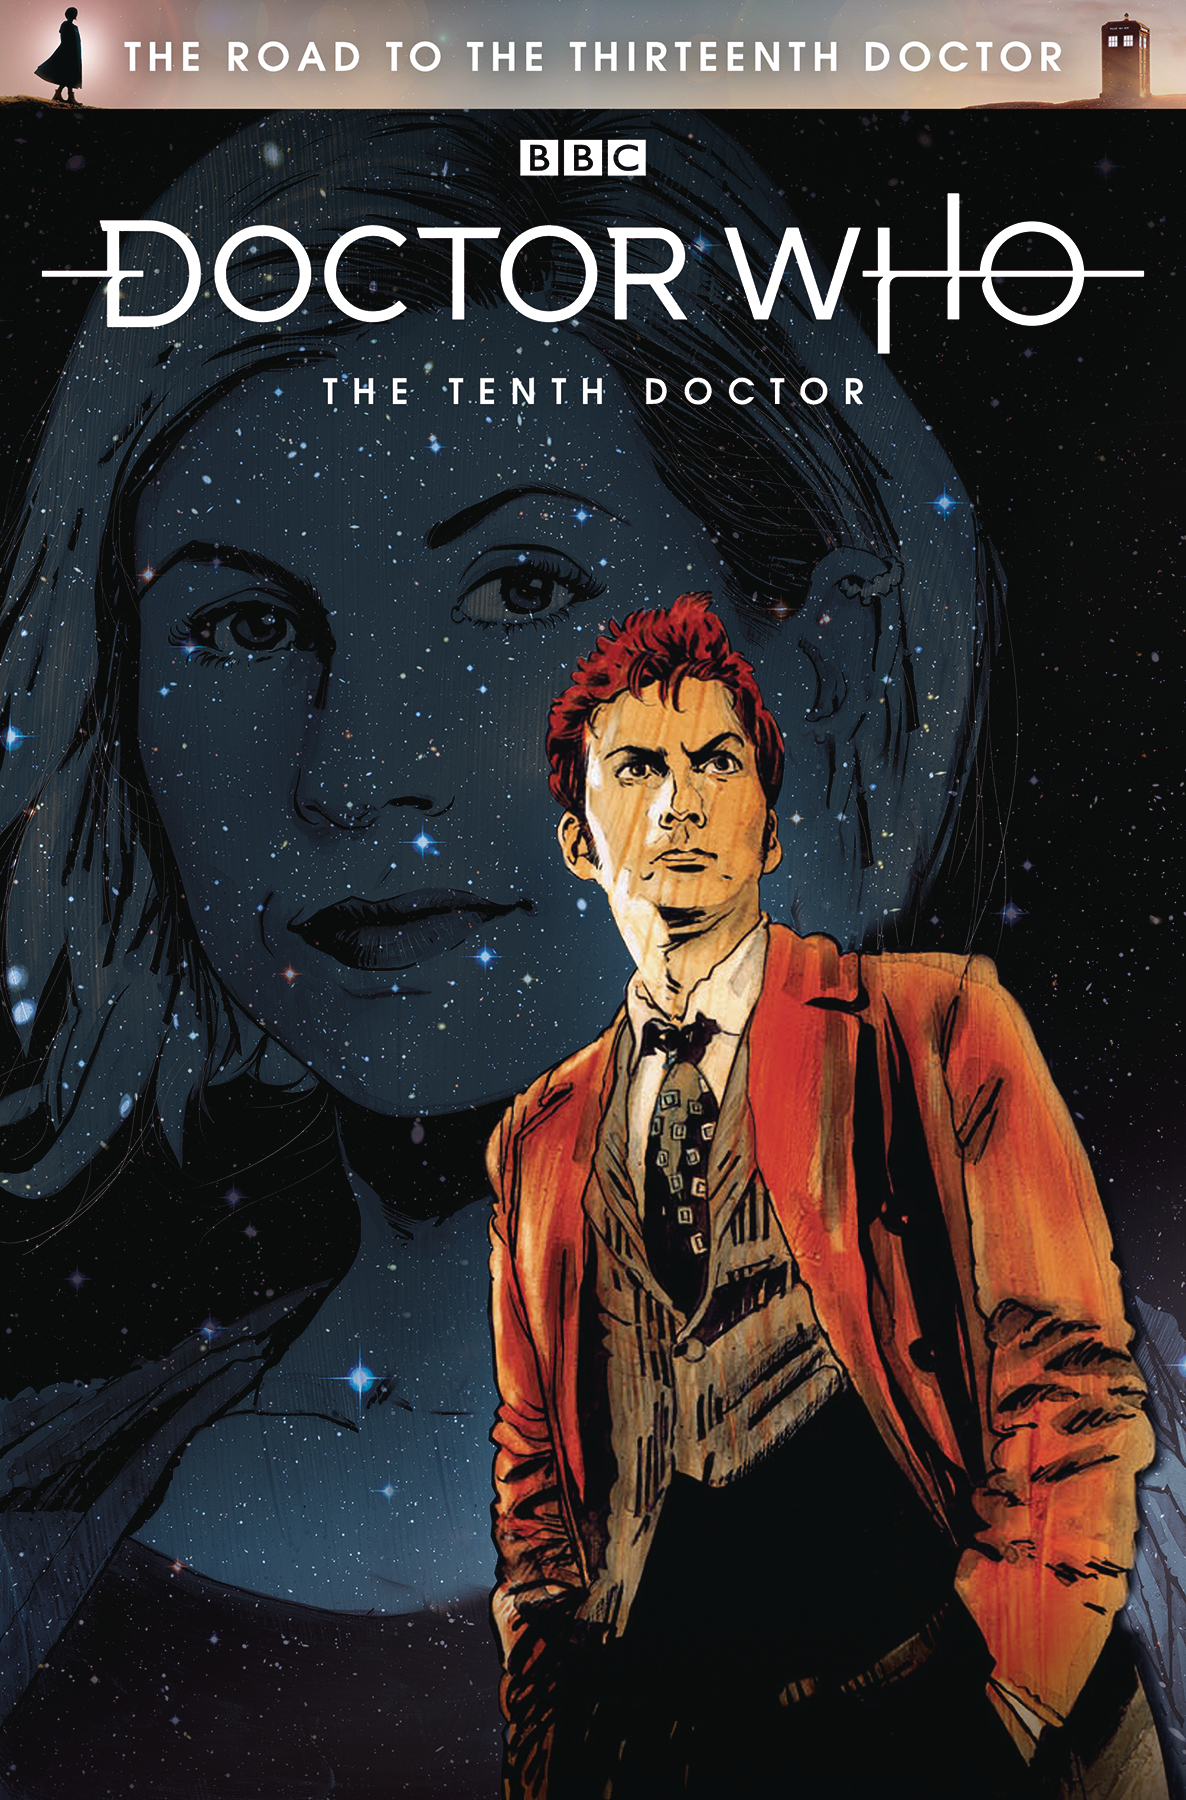 DOCTOR WHO ROAD TO 13TH DR 10TH DR SPECIAL #1 CVR A HACK